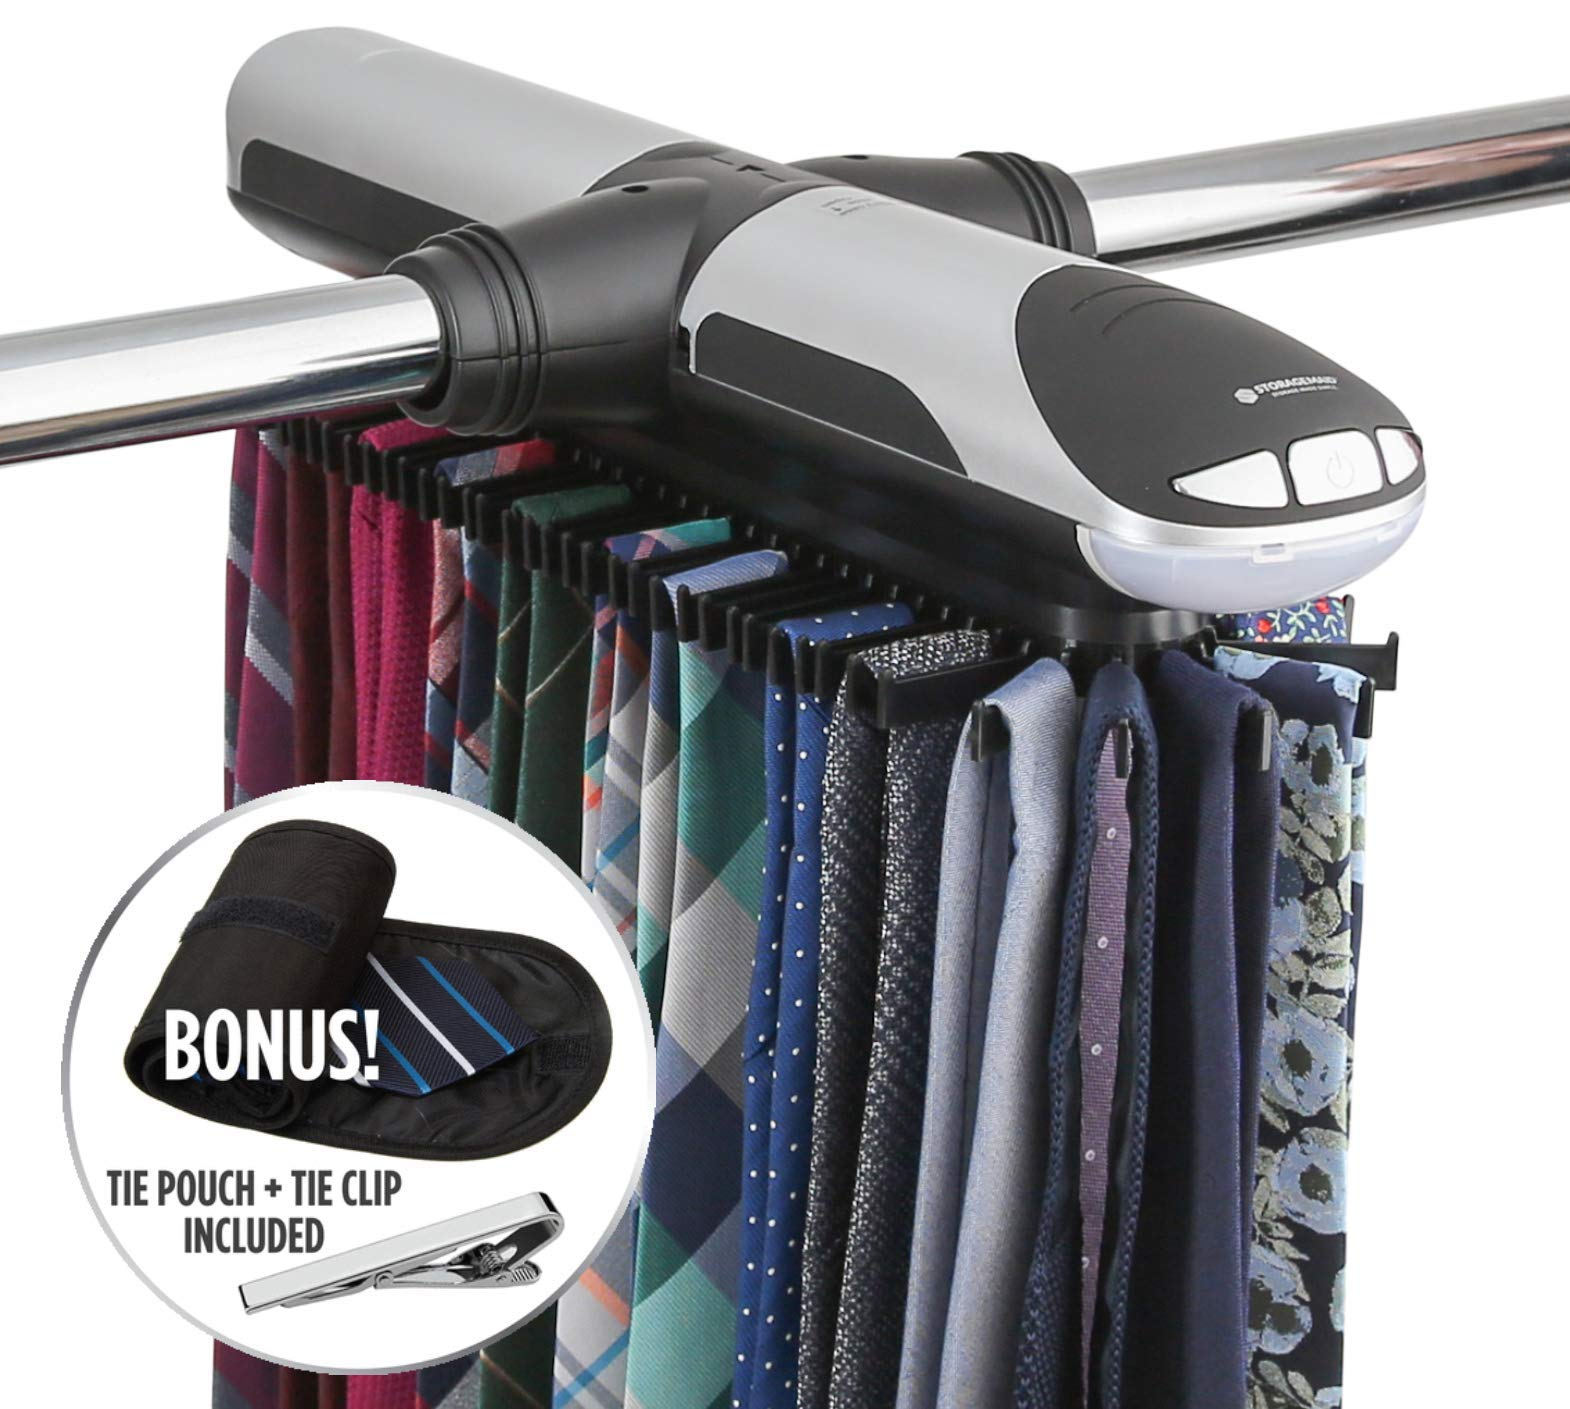 StorageMaid Motorized Tie Rack Organizer for Closet with LED Lights - Battery Operated - Holds 72 Ties and 8 Belts - Includes J Hooks for Wire Shelving - Bonus Tie Travel Pouch & Tie Clip by StorageMaid